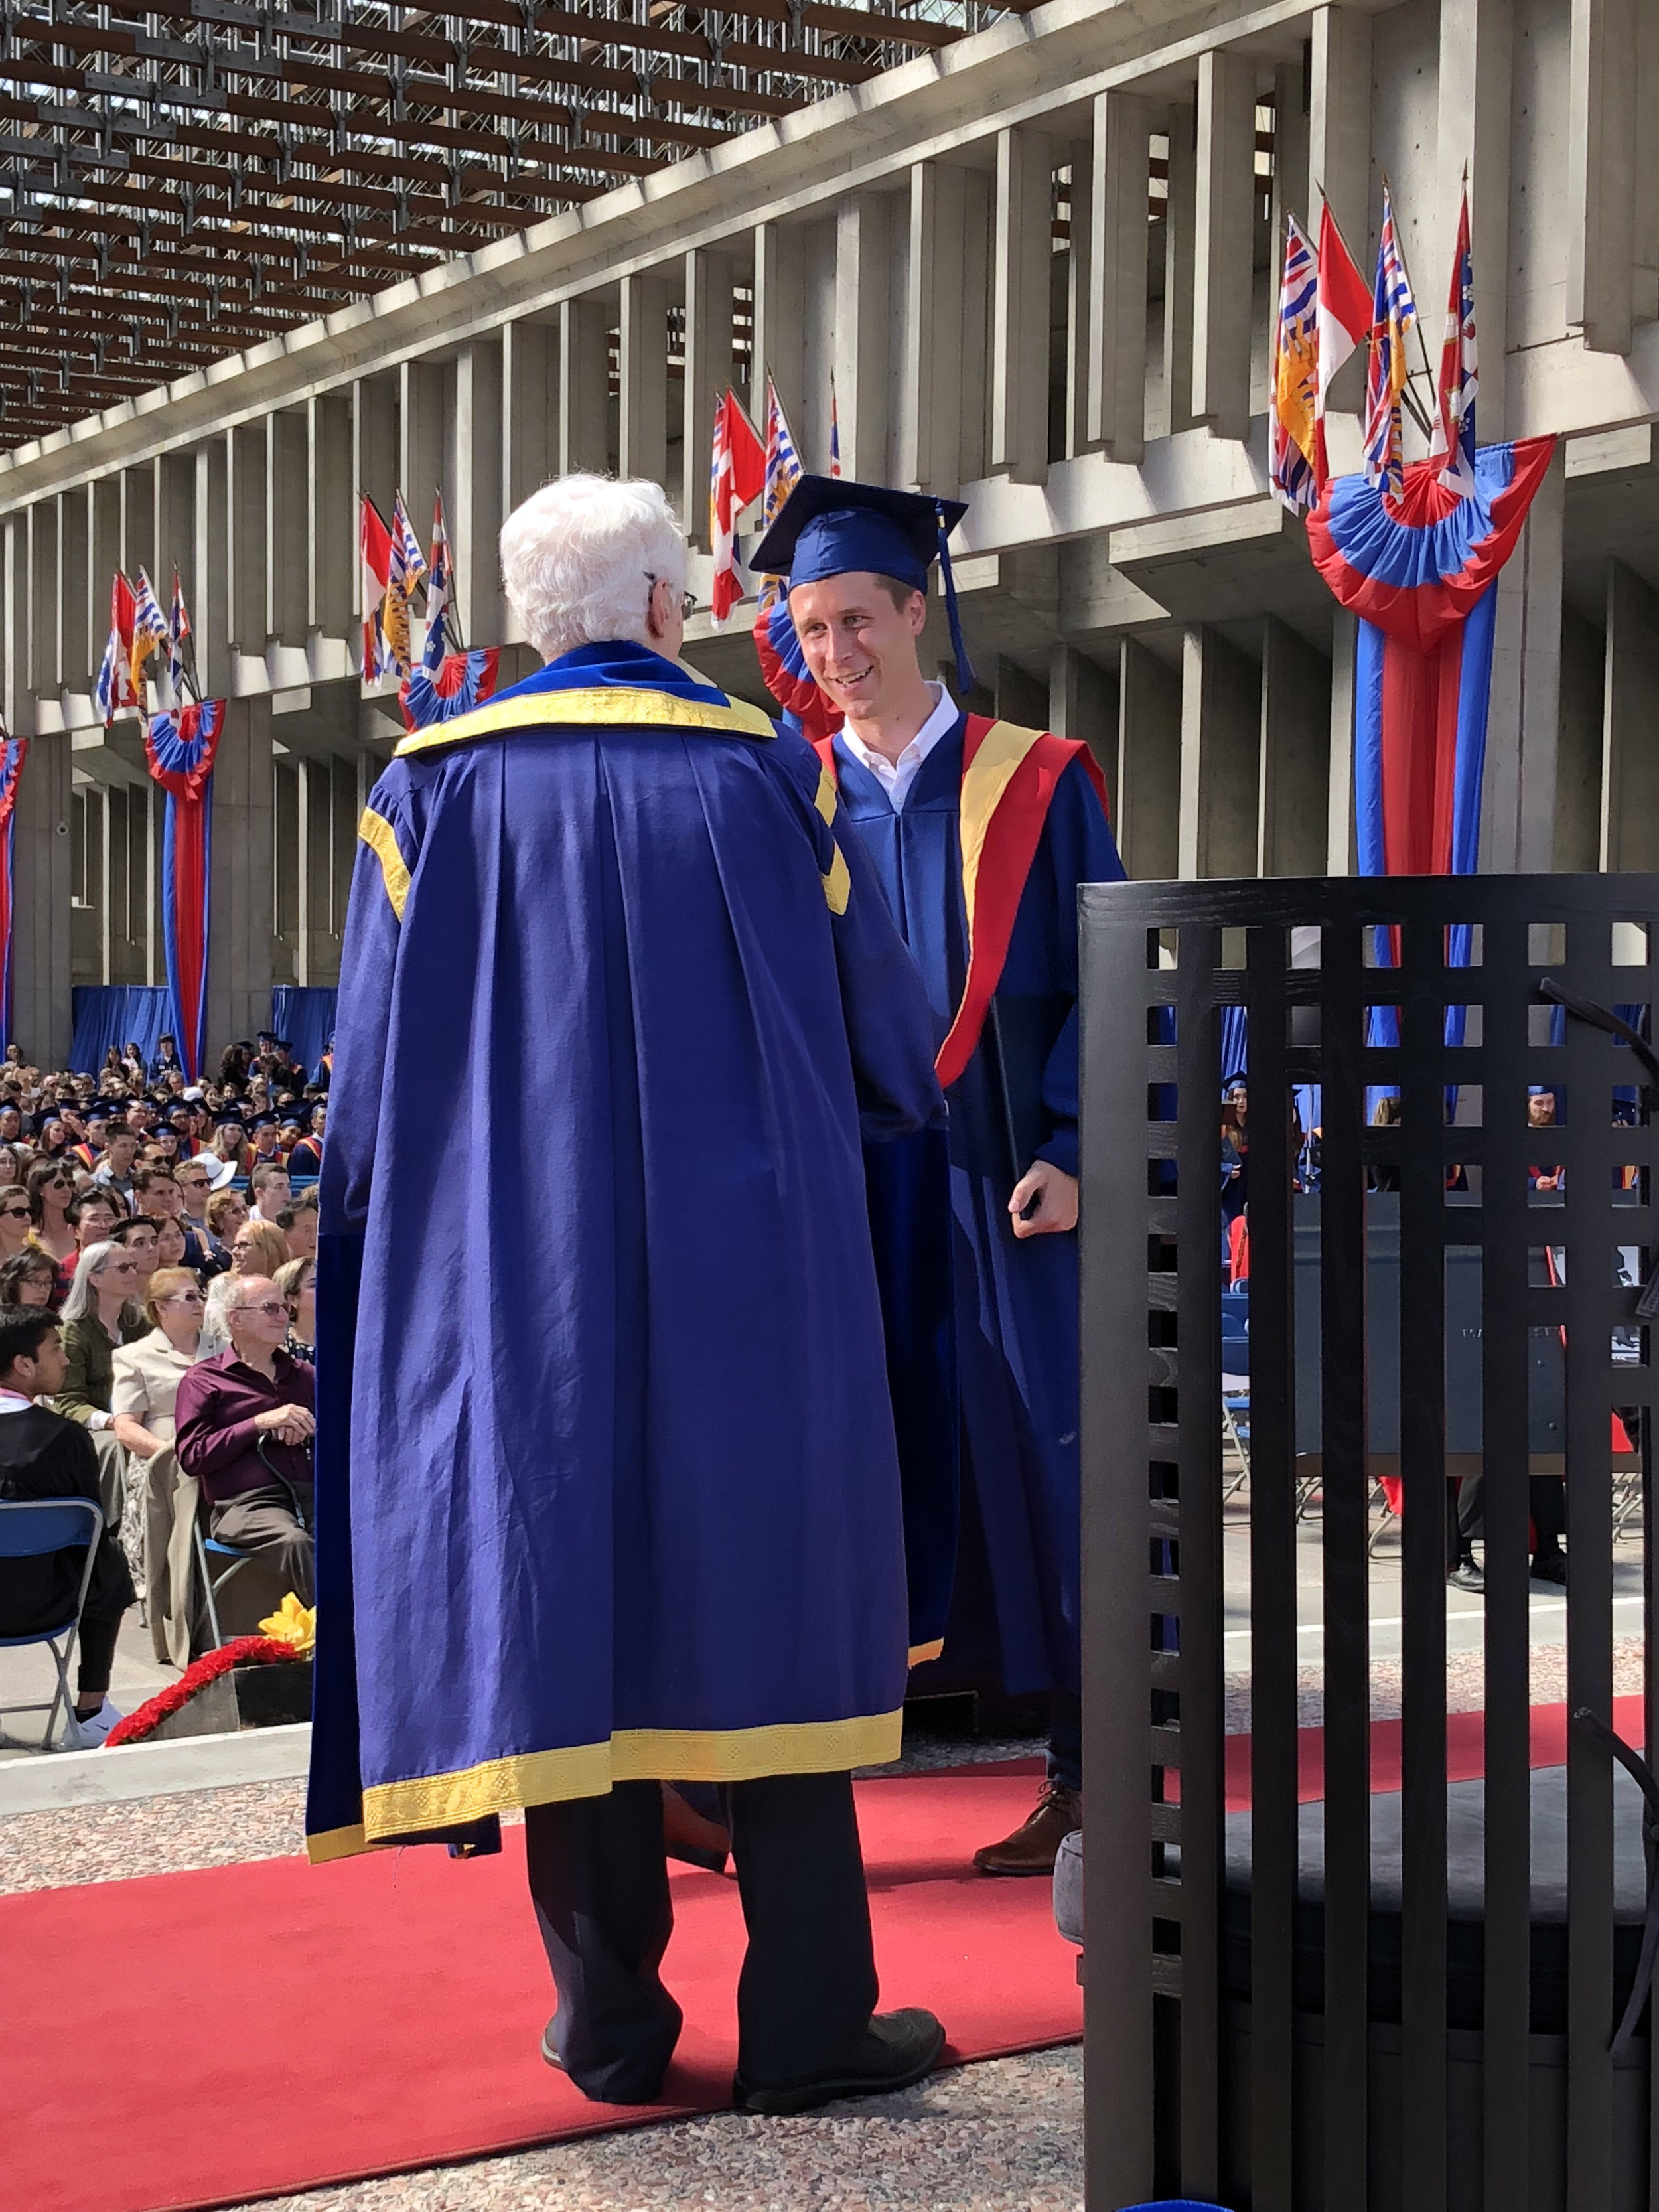 Tim shaking hands with President Petter after being awarded his M.Sc. at Convocation, June 2019